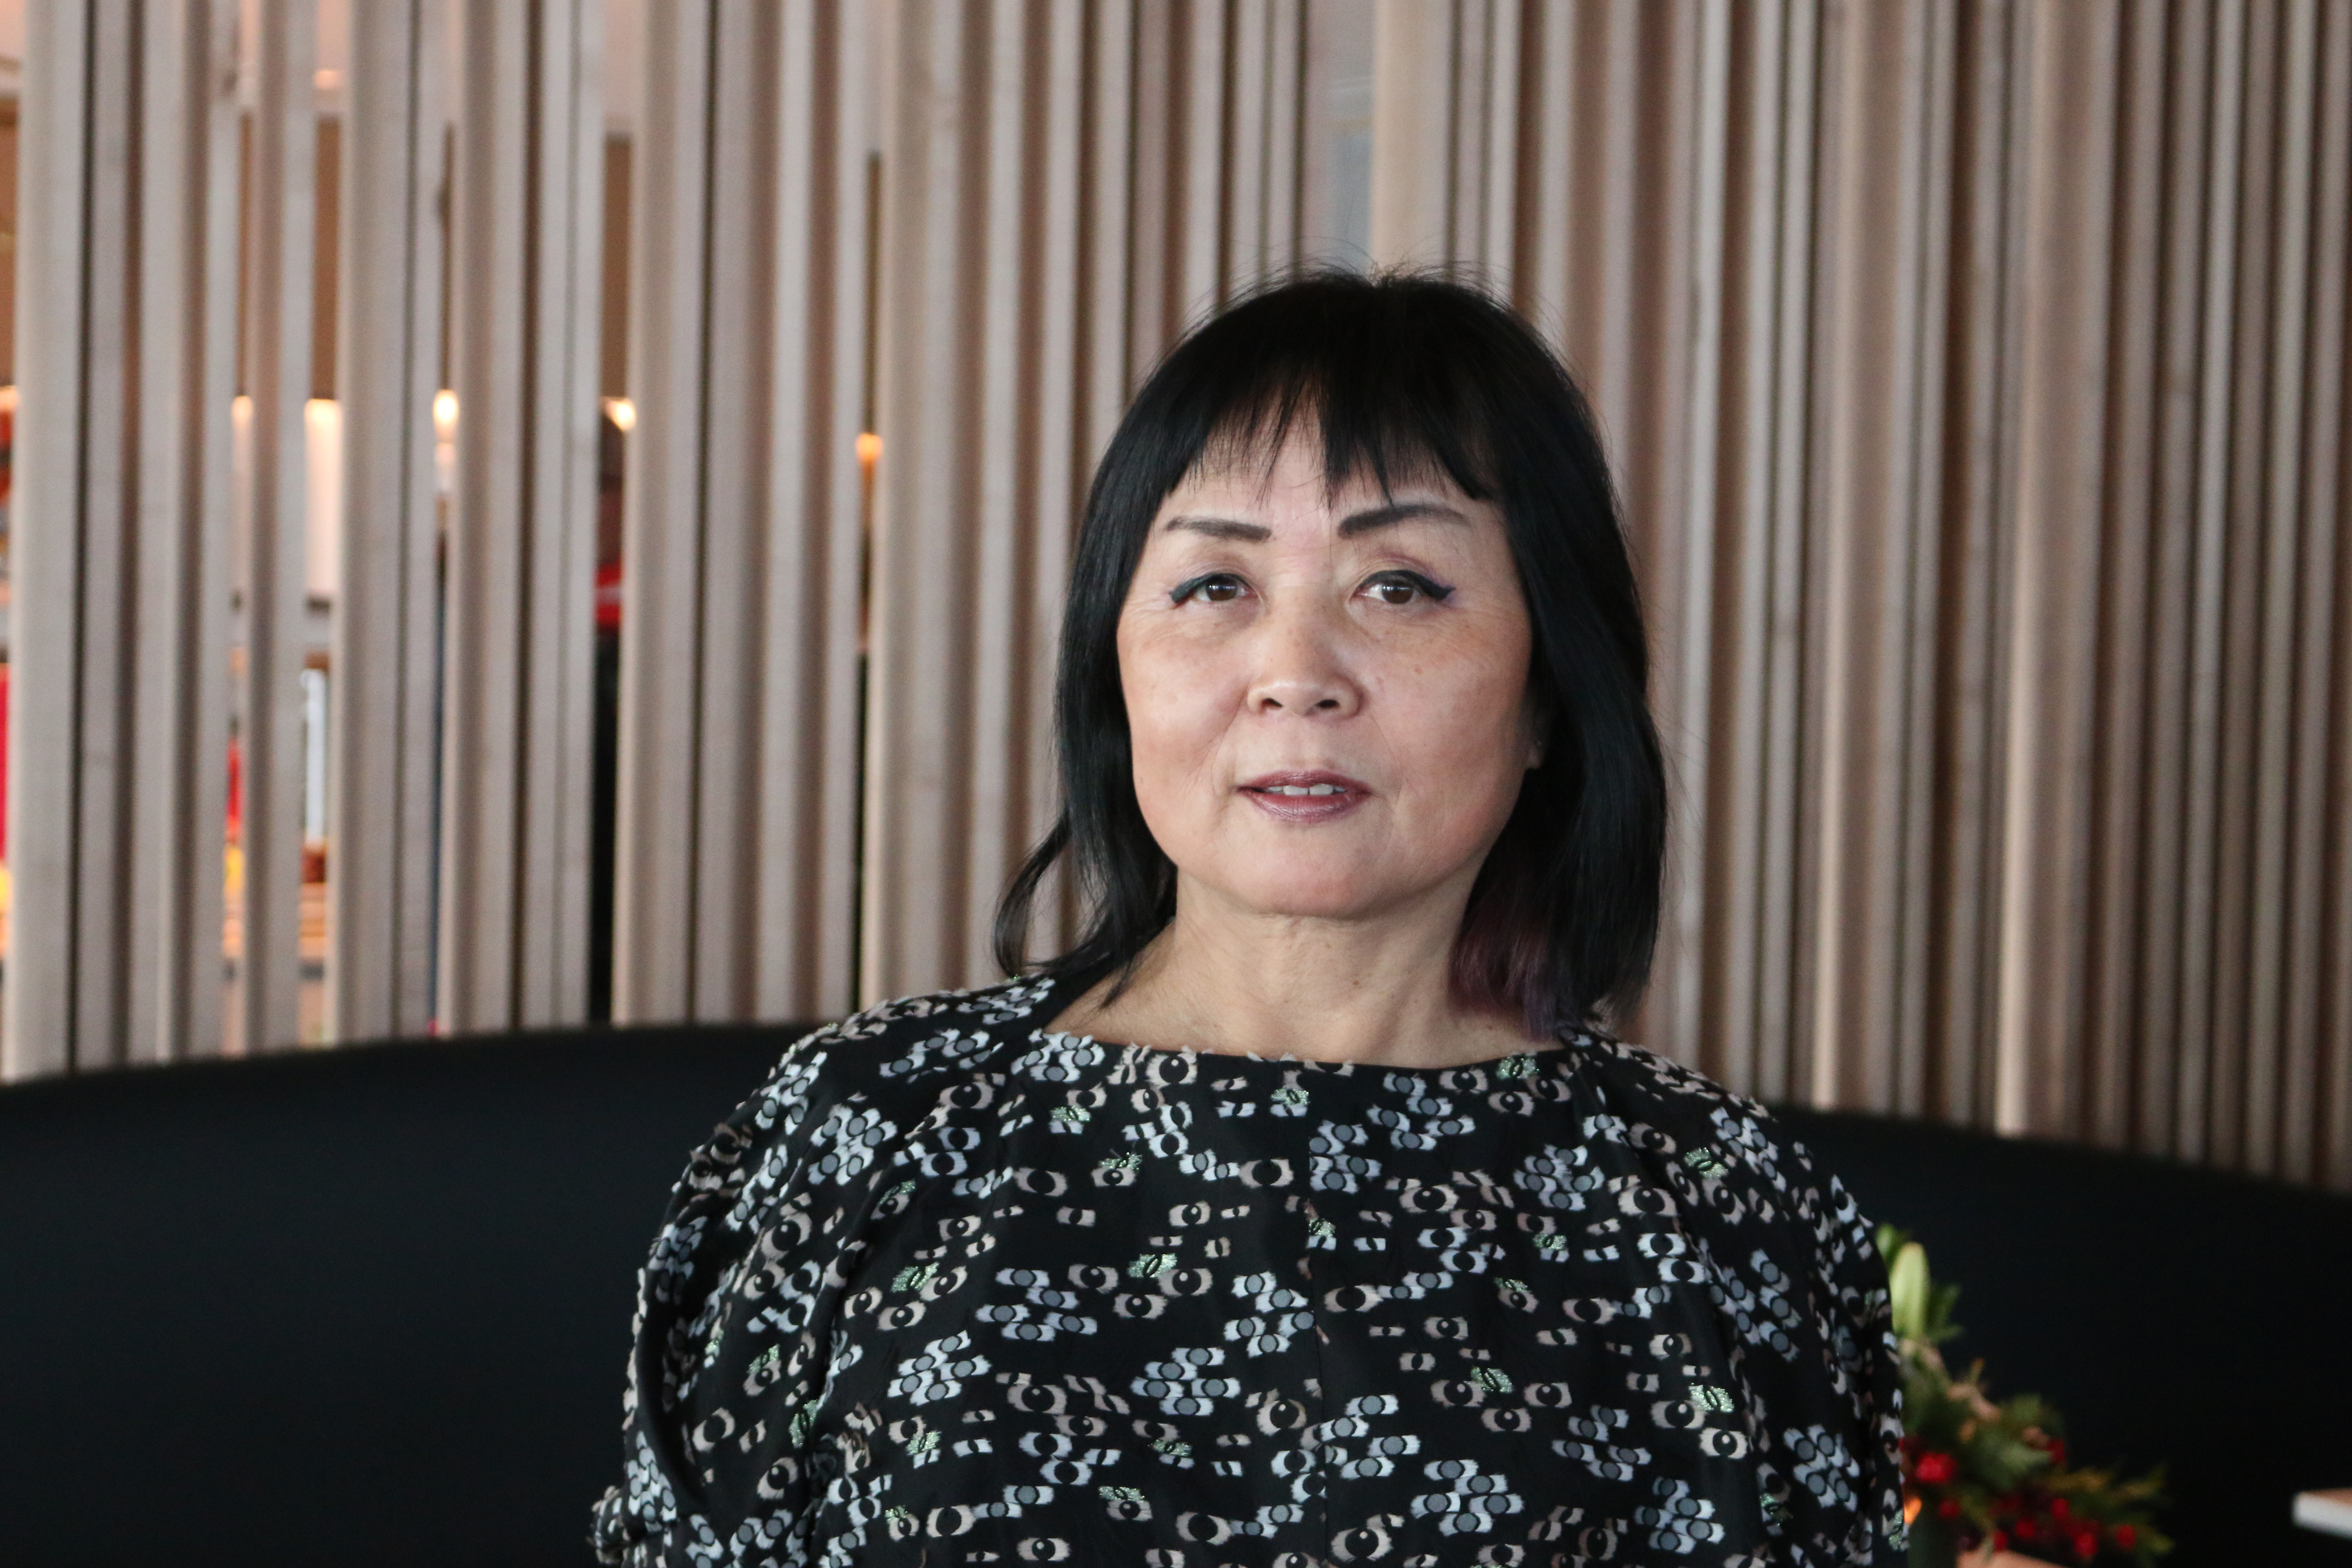 Heekyung Duquette, designer of the Maple Leaf Lounge at St. John's, said she was inspired by the natural beauty of Newfoundland and Labrador.